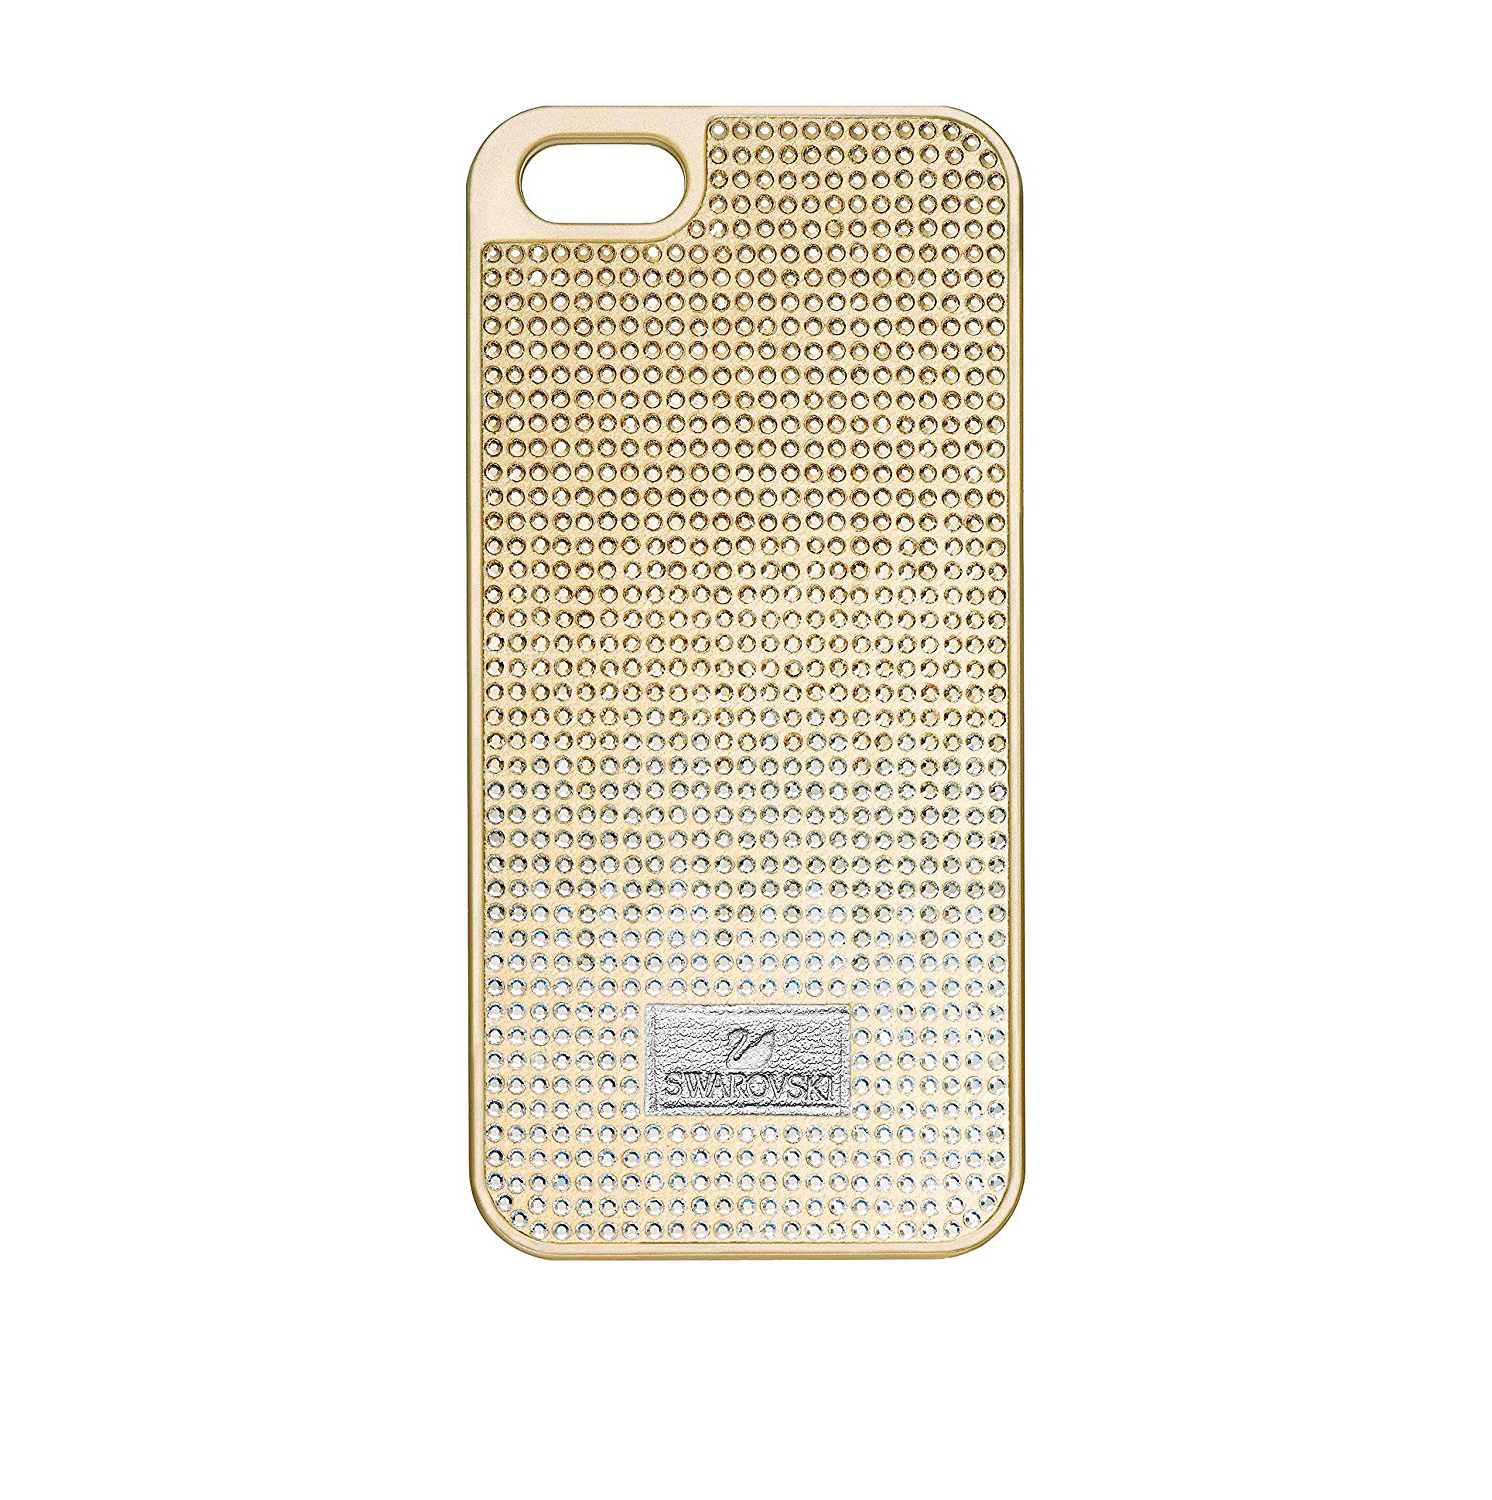 Swarovski Yellow Gold Smartphone Case THAO IPHONE 5/5S In...